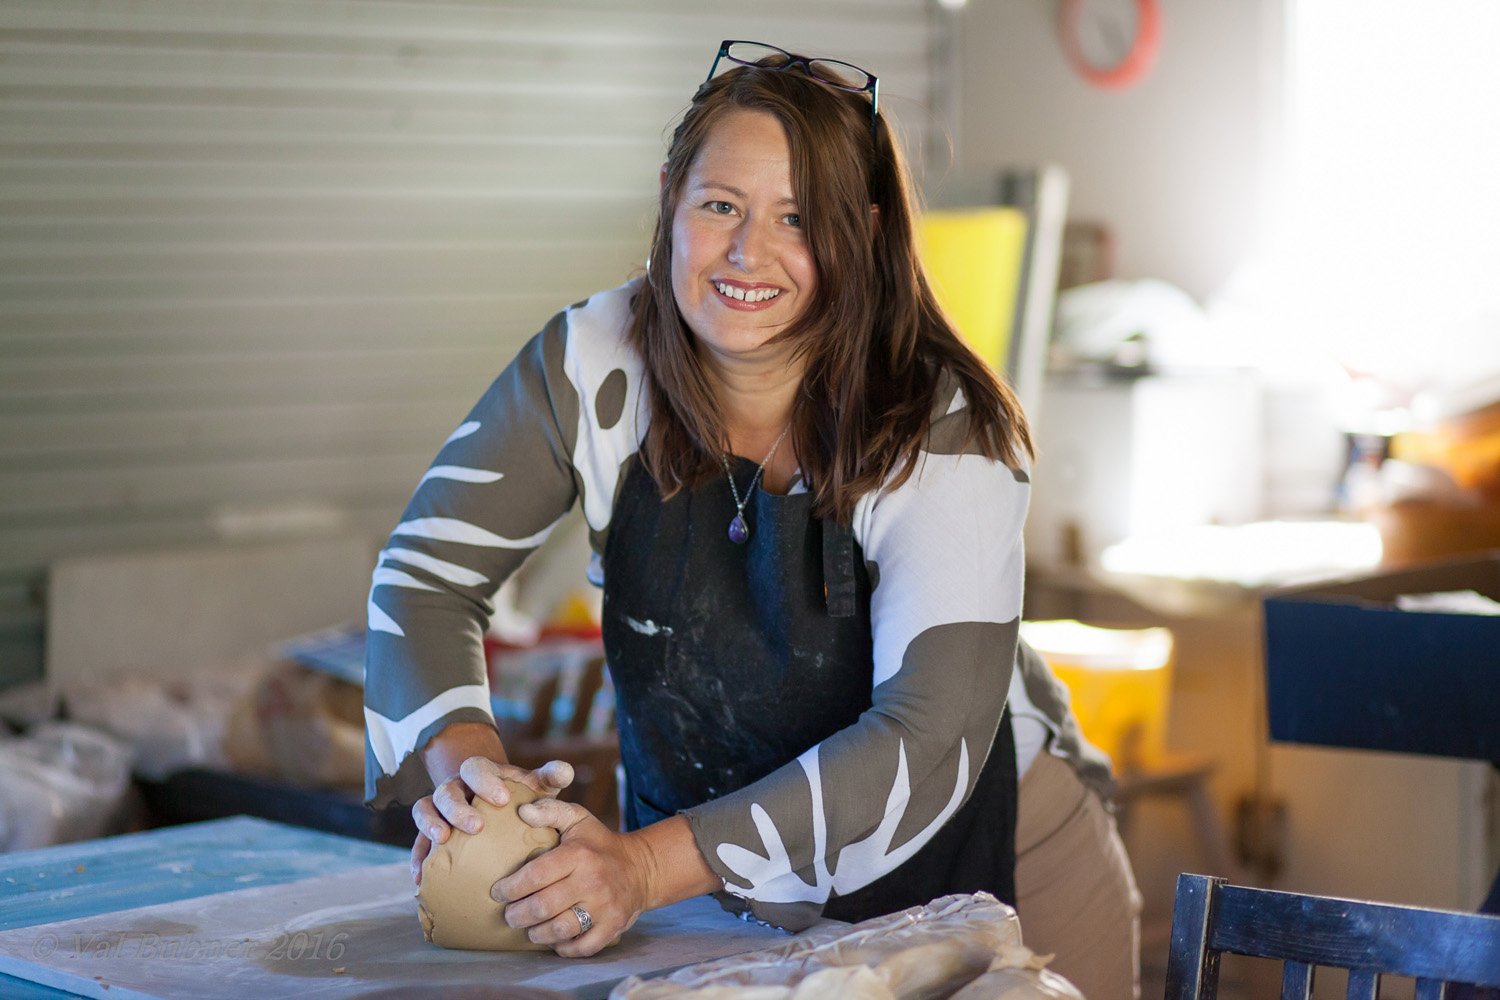 Tania Kunze a ceramic artist from Adelaide kneading clay in her studio